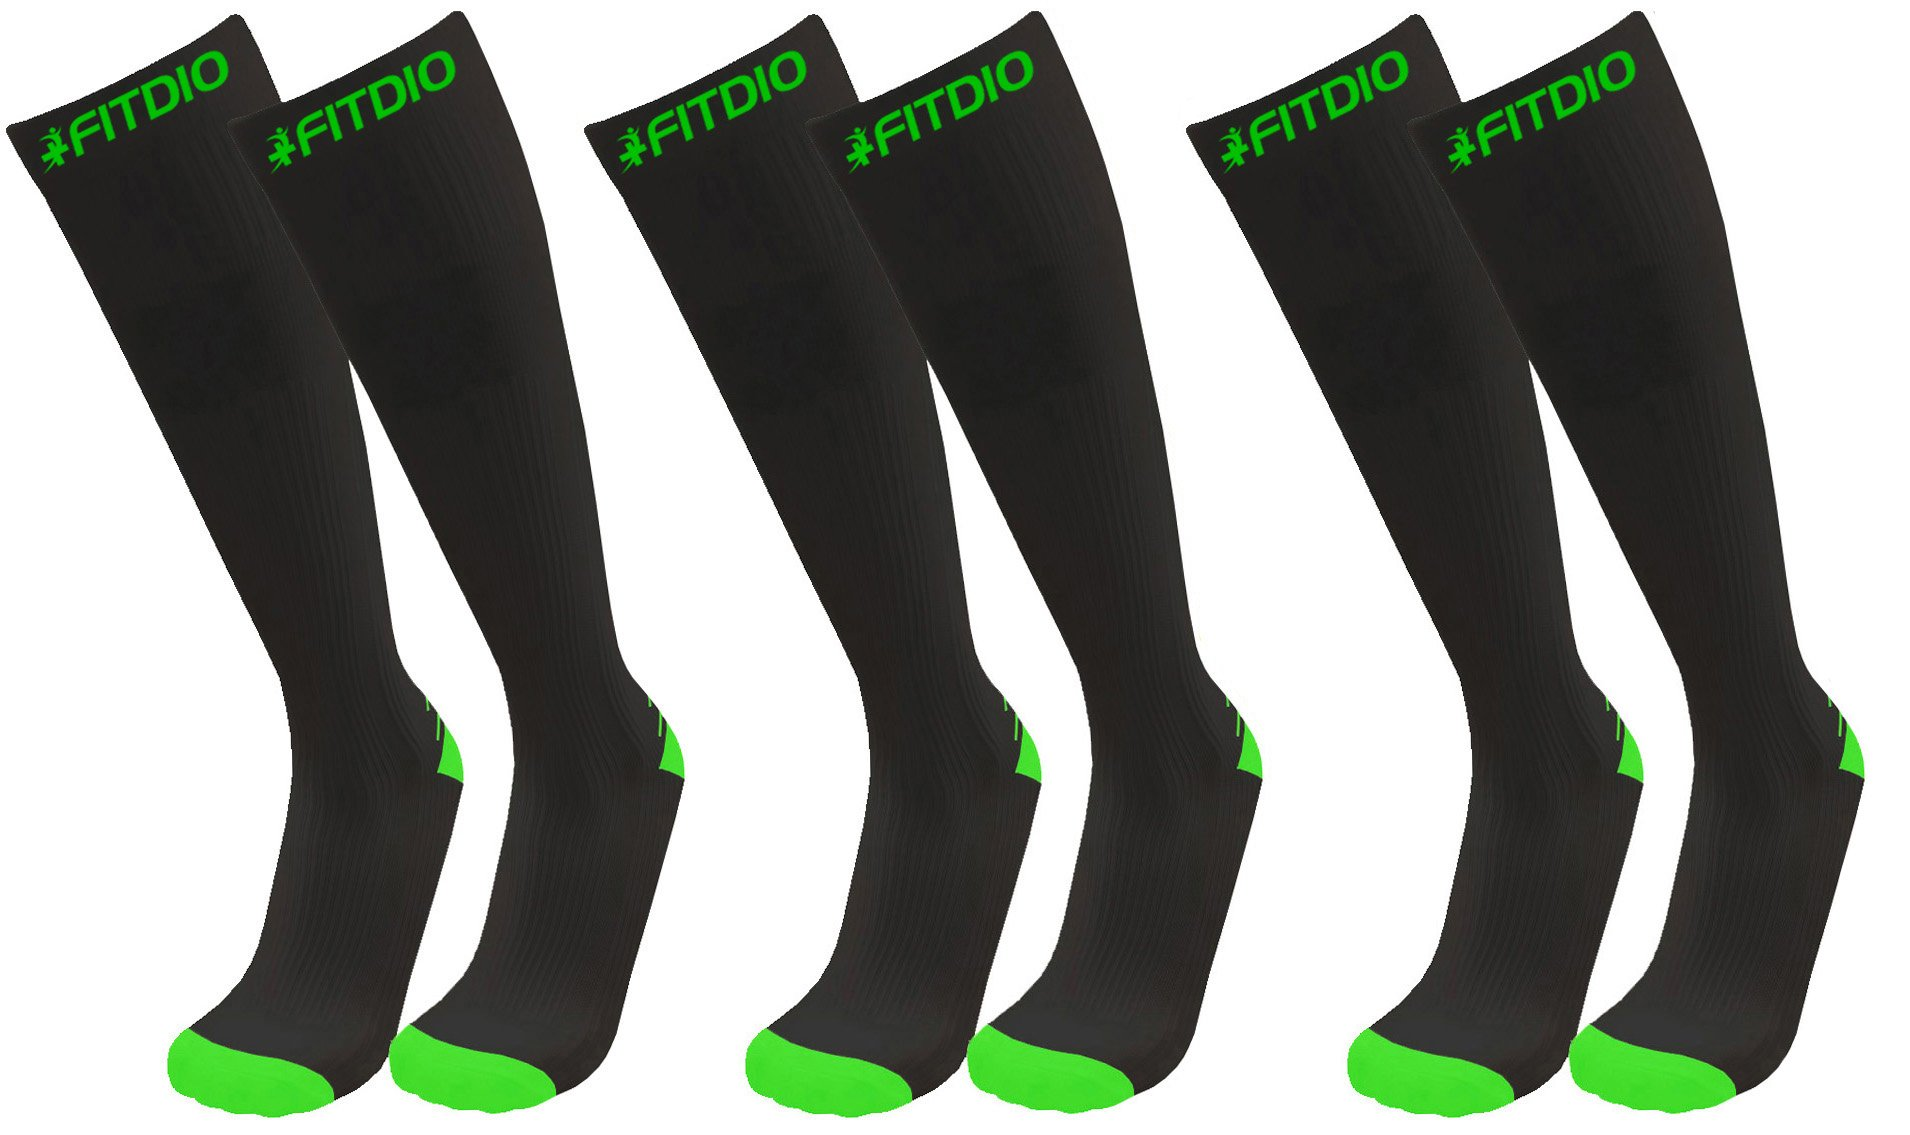 e455103b5bc Get Quotations · Wide Calf Plus Size Knee High 15-20mmHG 3-Pair Sports  Compression Socks Size